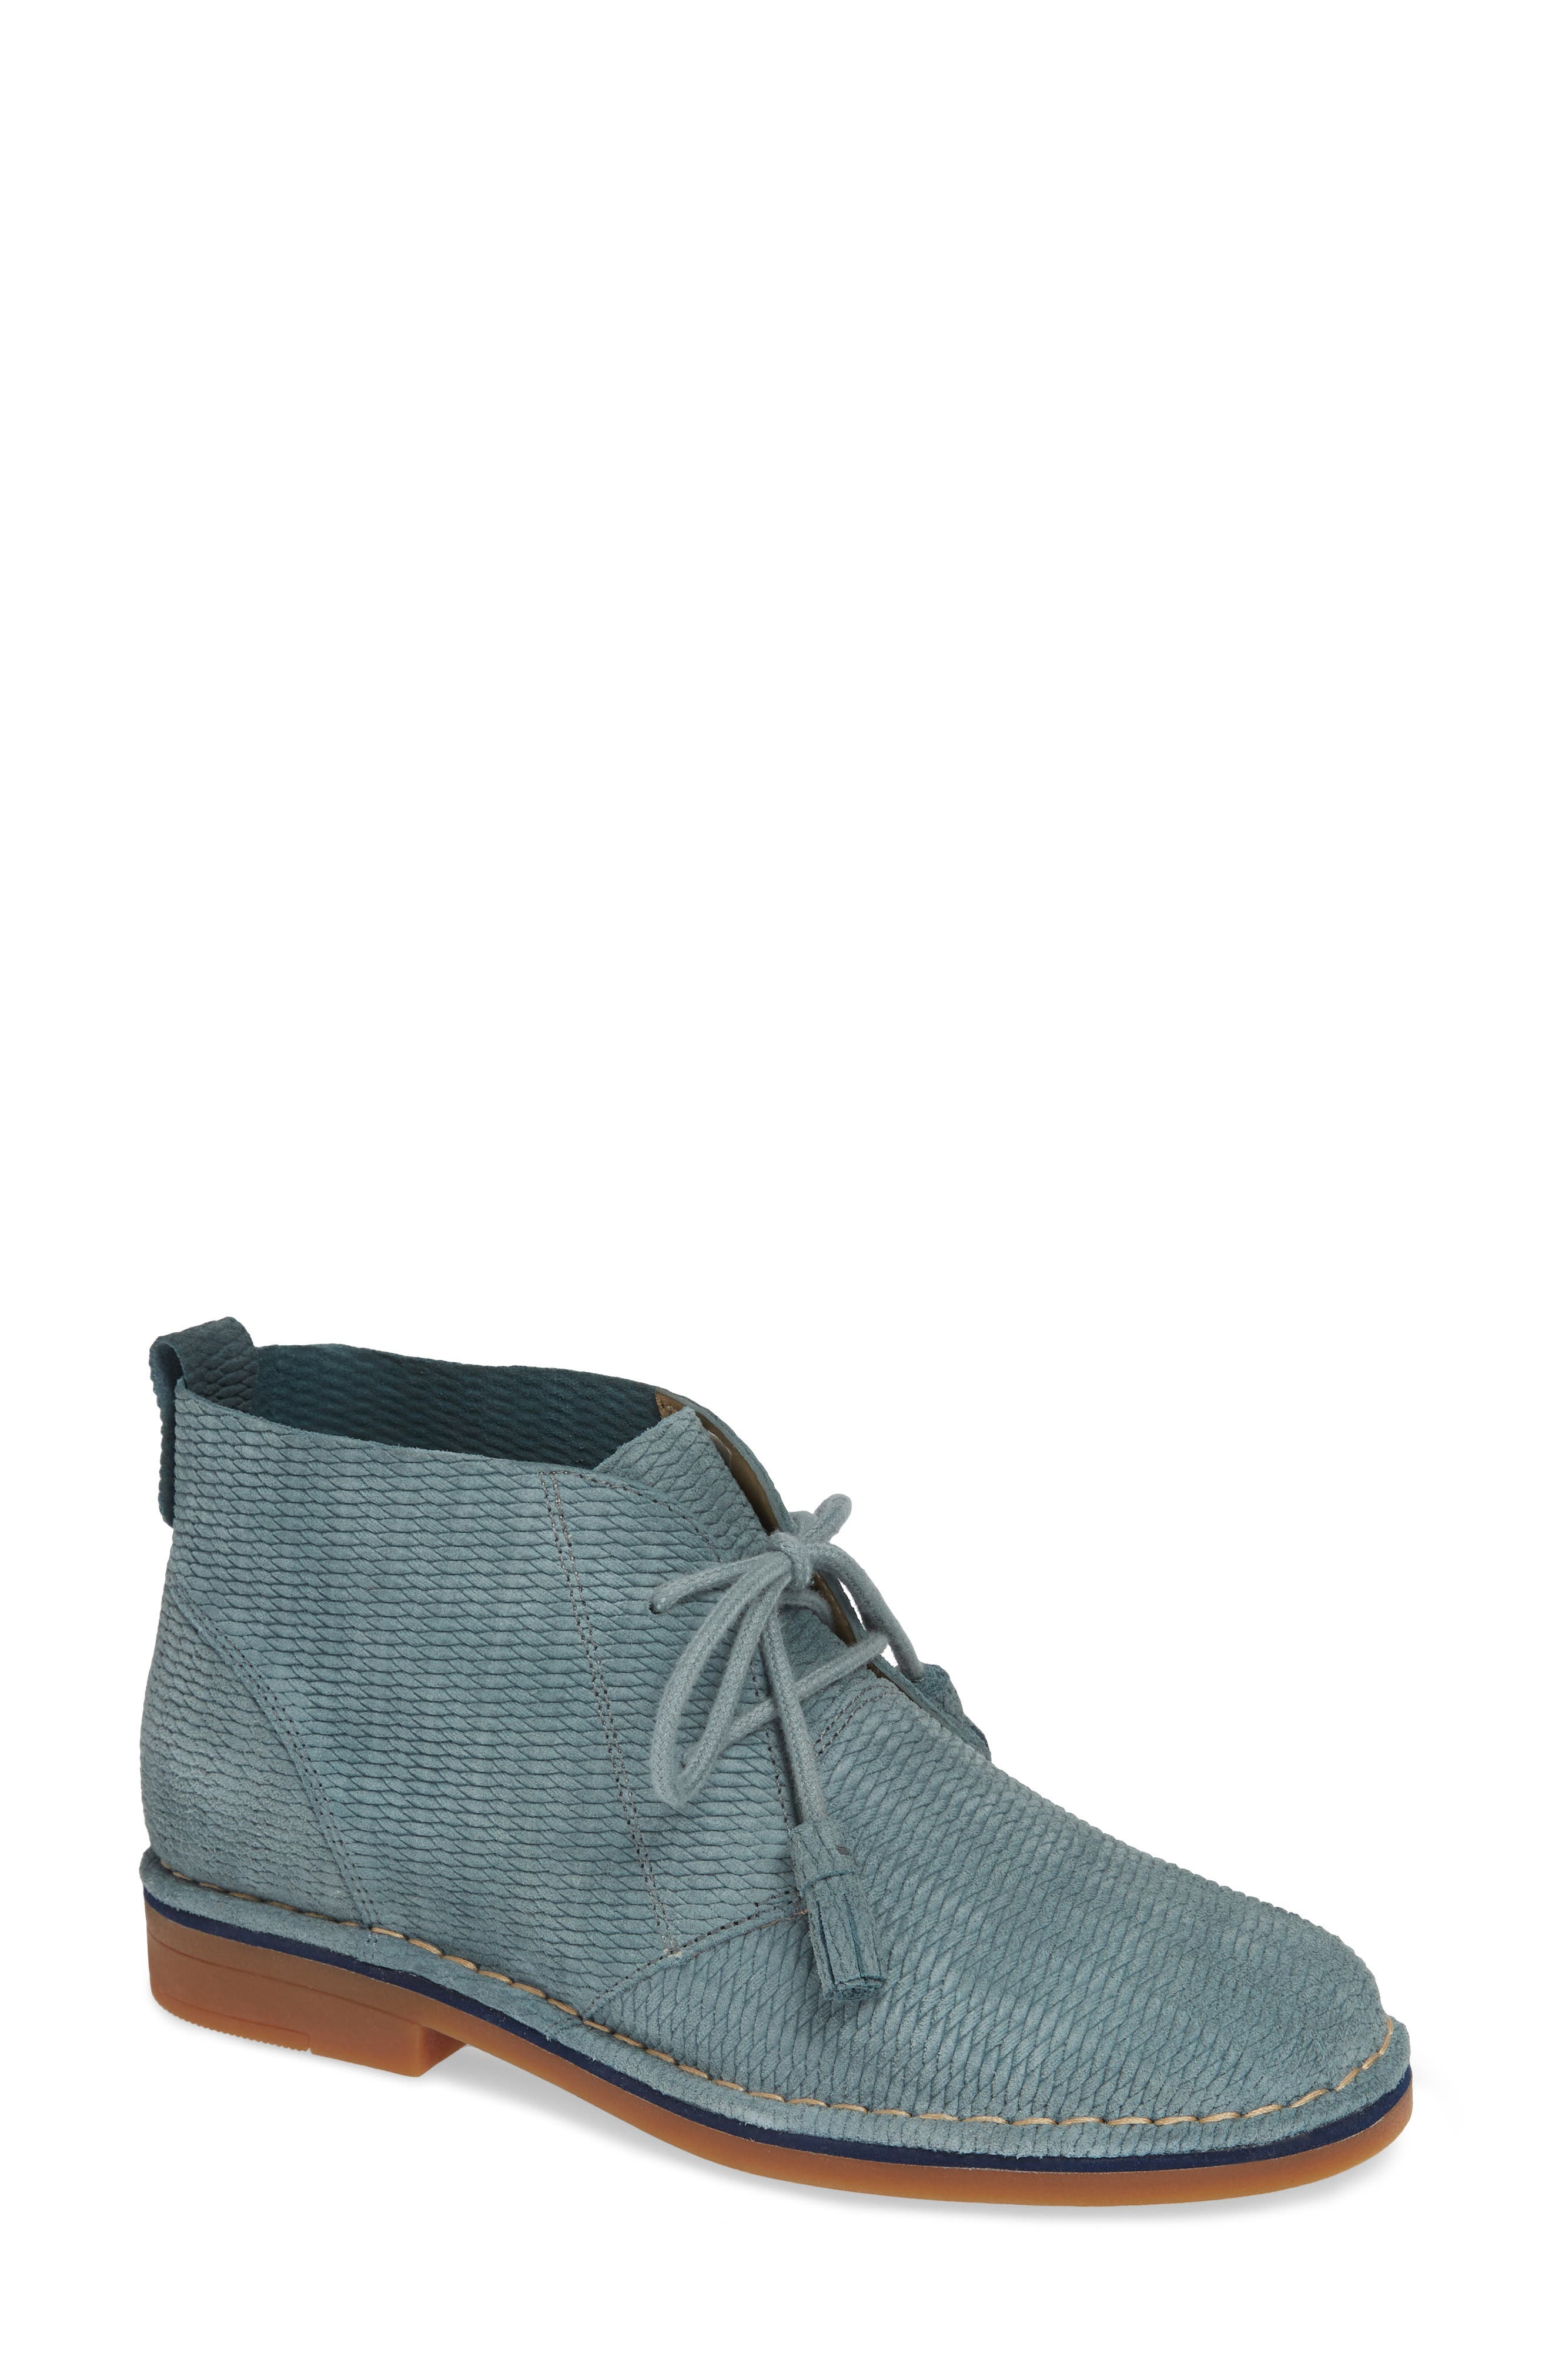 'Cyra Catelyn' Chukka Boot,                         Main,                         color, Storm Embossed Suede